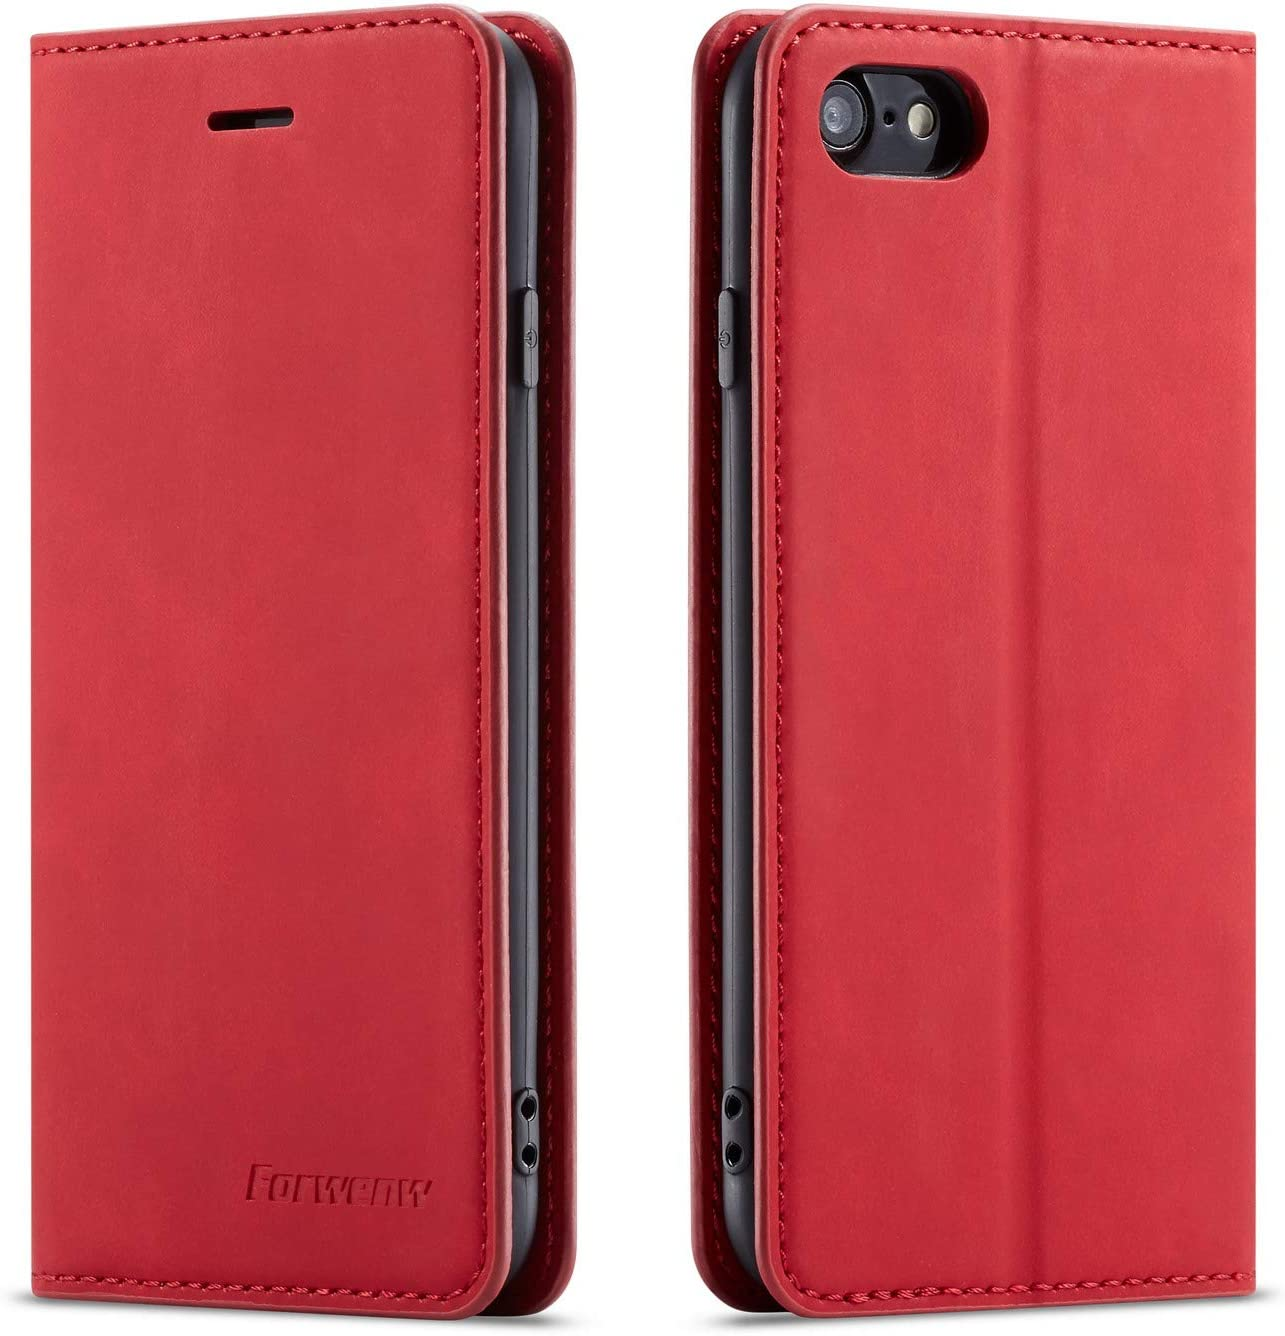 QLTYPRI Case for iPhone 7 iPhone 8 iPhone SE 2020, Premium PU Leather Cover TPU Bumper with Card Holder Kickstand Hidden Magnetic Adsorption Flip Wallet Case Cover for iPhone 7 8 SE 2020 - Red